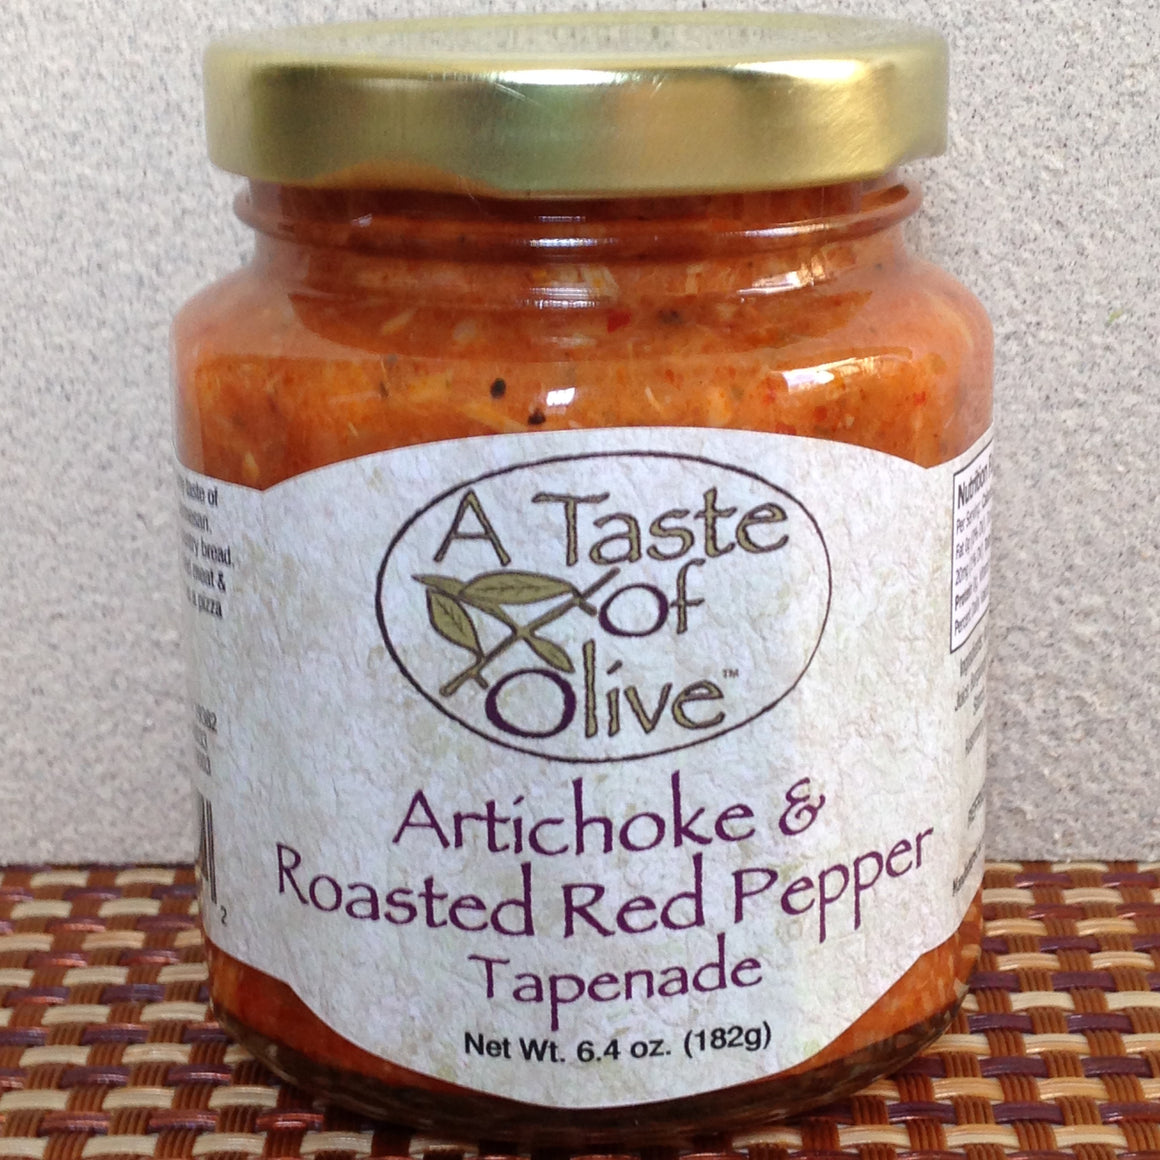 Artichoke & Roasted Red Pepper Tapenade | A Taste of Olive - A Taste of Olive